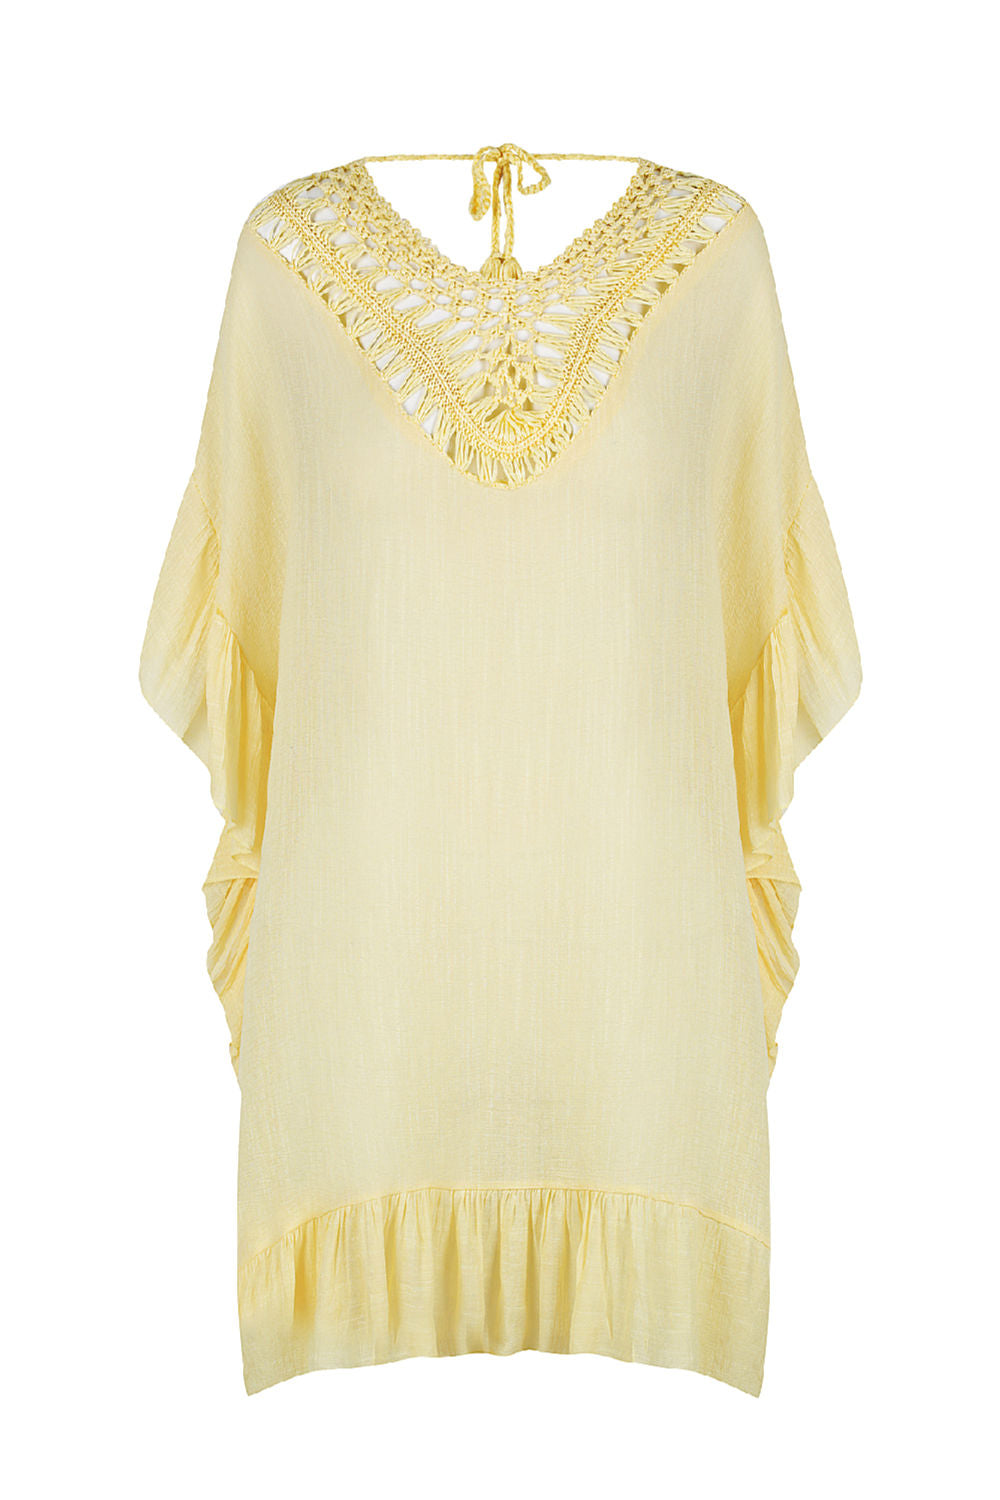 beach-kaftan-dress-cover-up-lemon-yellow-crochet-trim